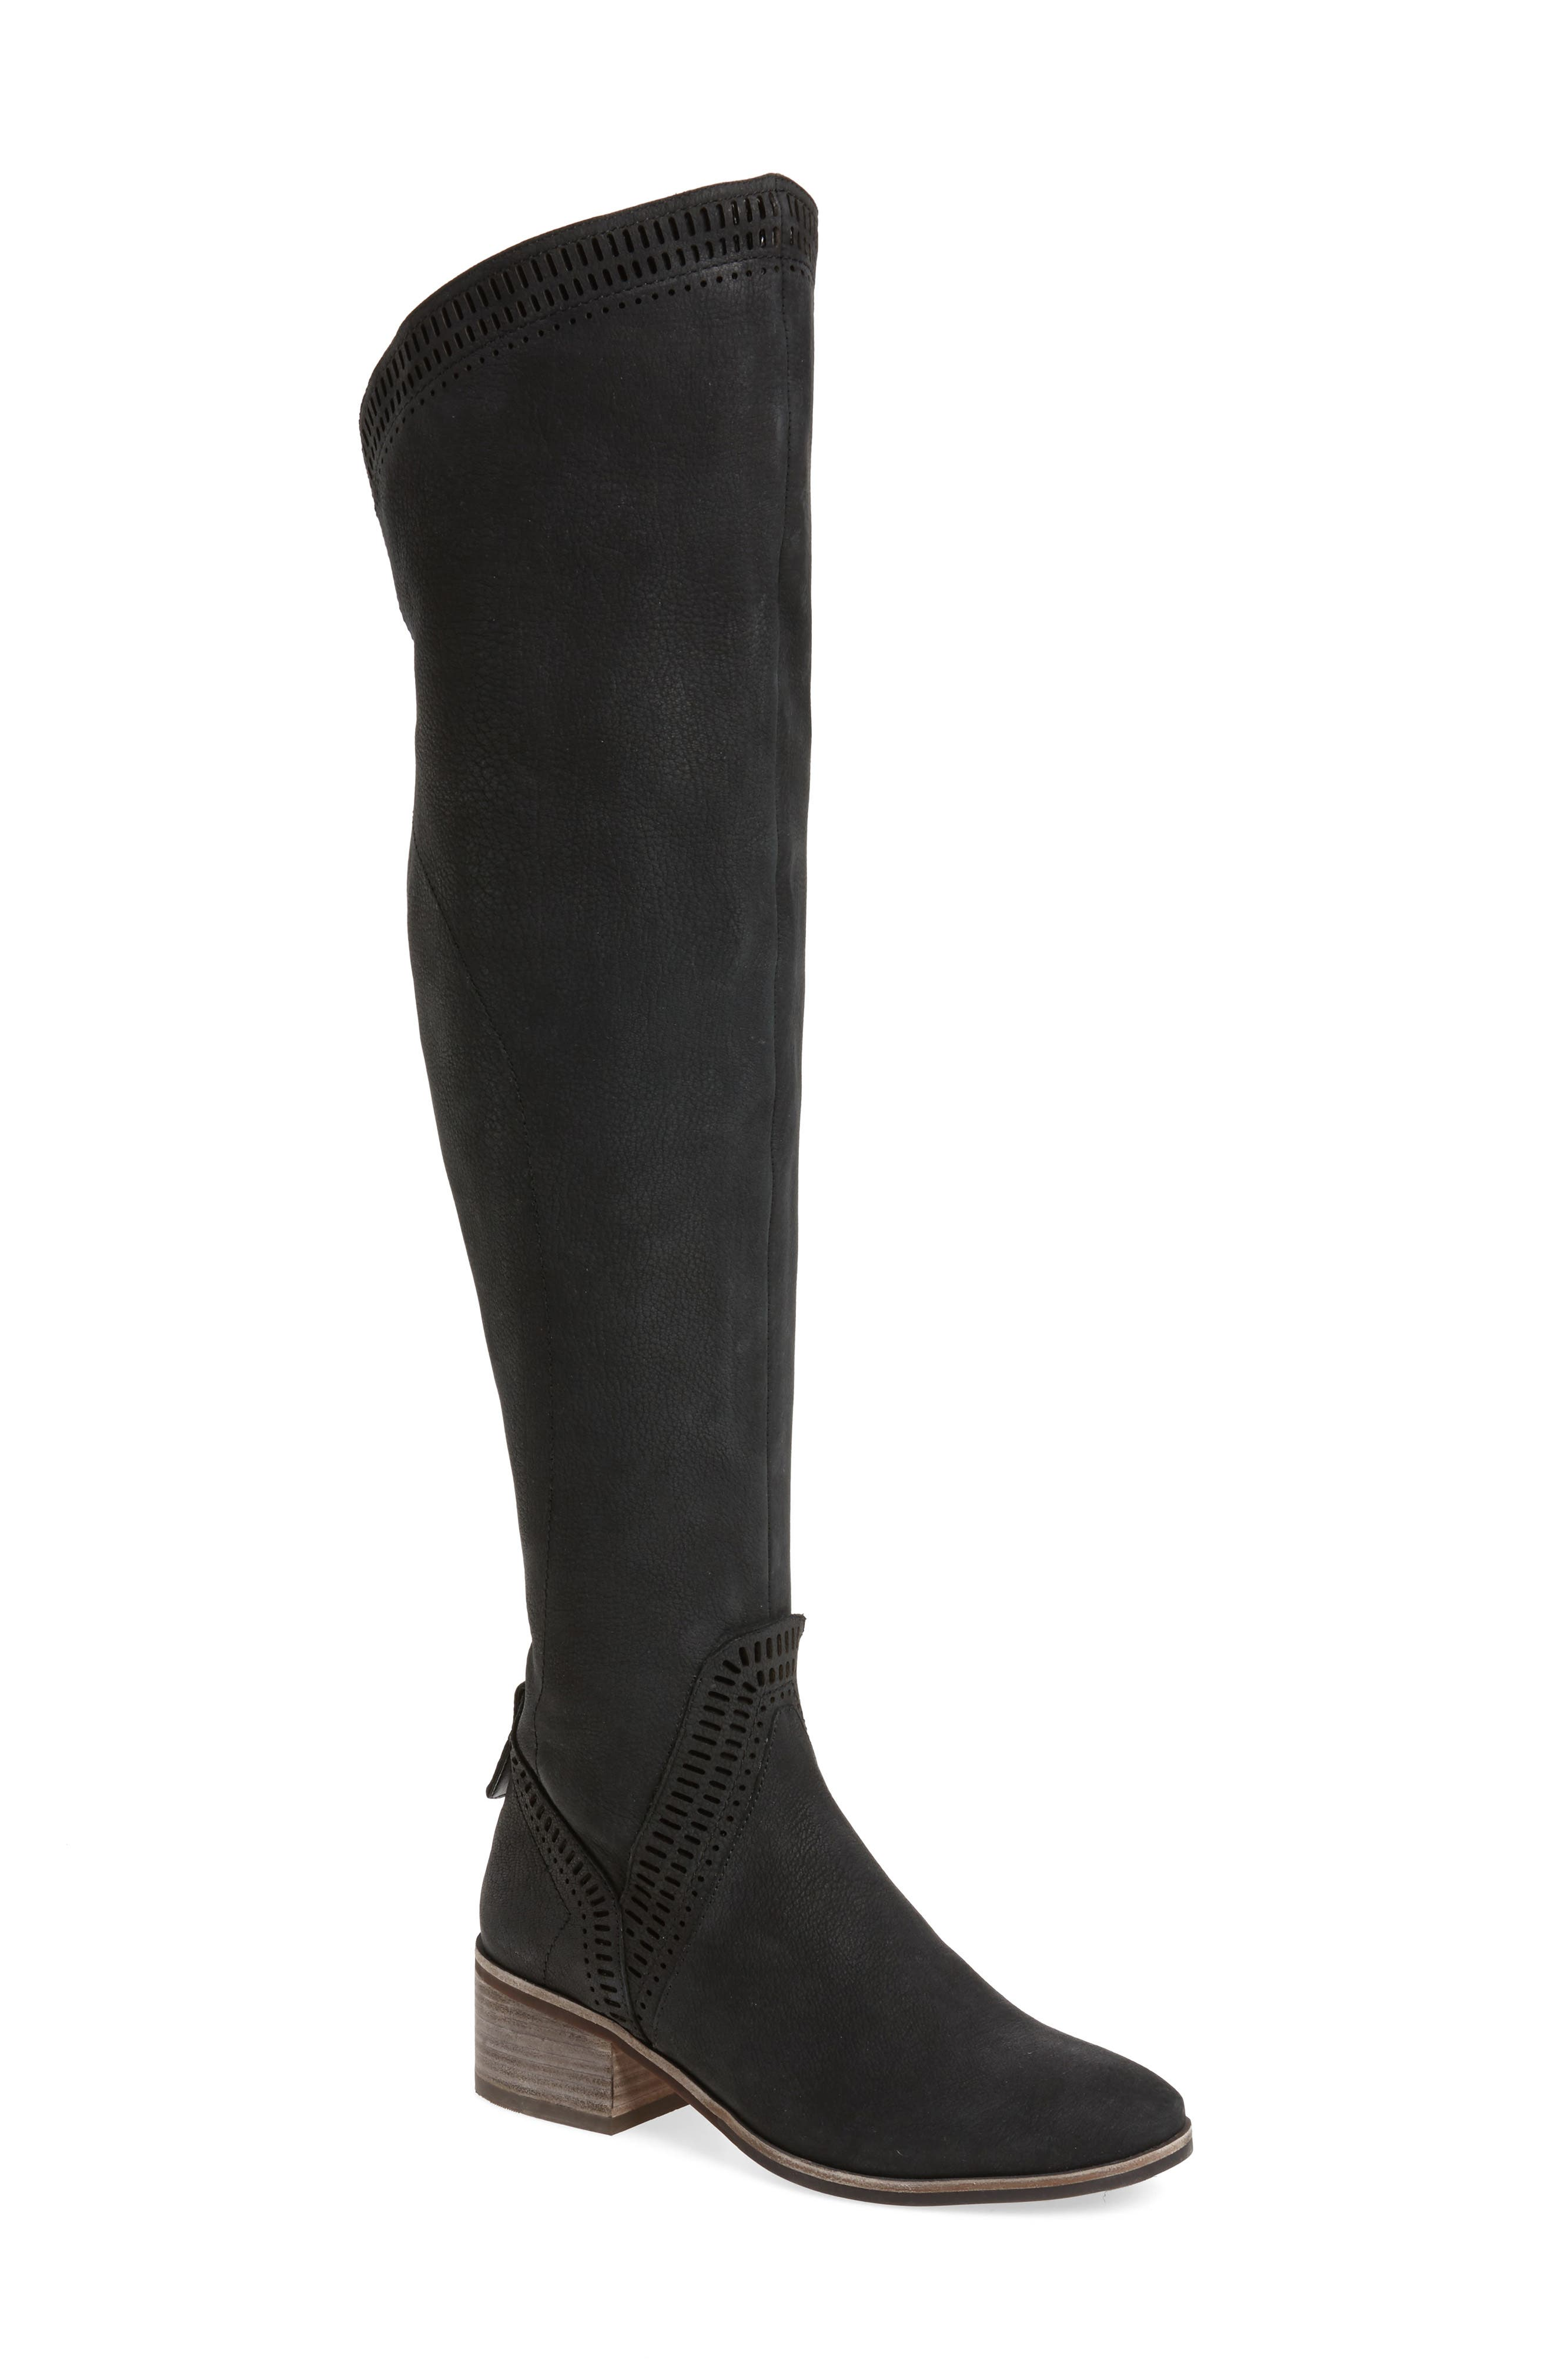 Karinda Over the Knee Boot,                             Main thumbnail 1, color,                             Black Leather Wide Calf